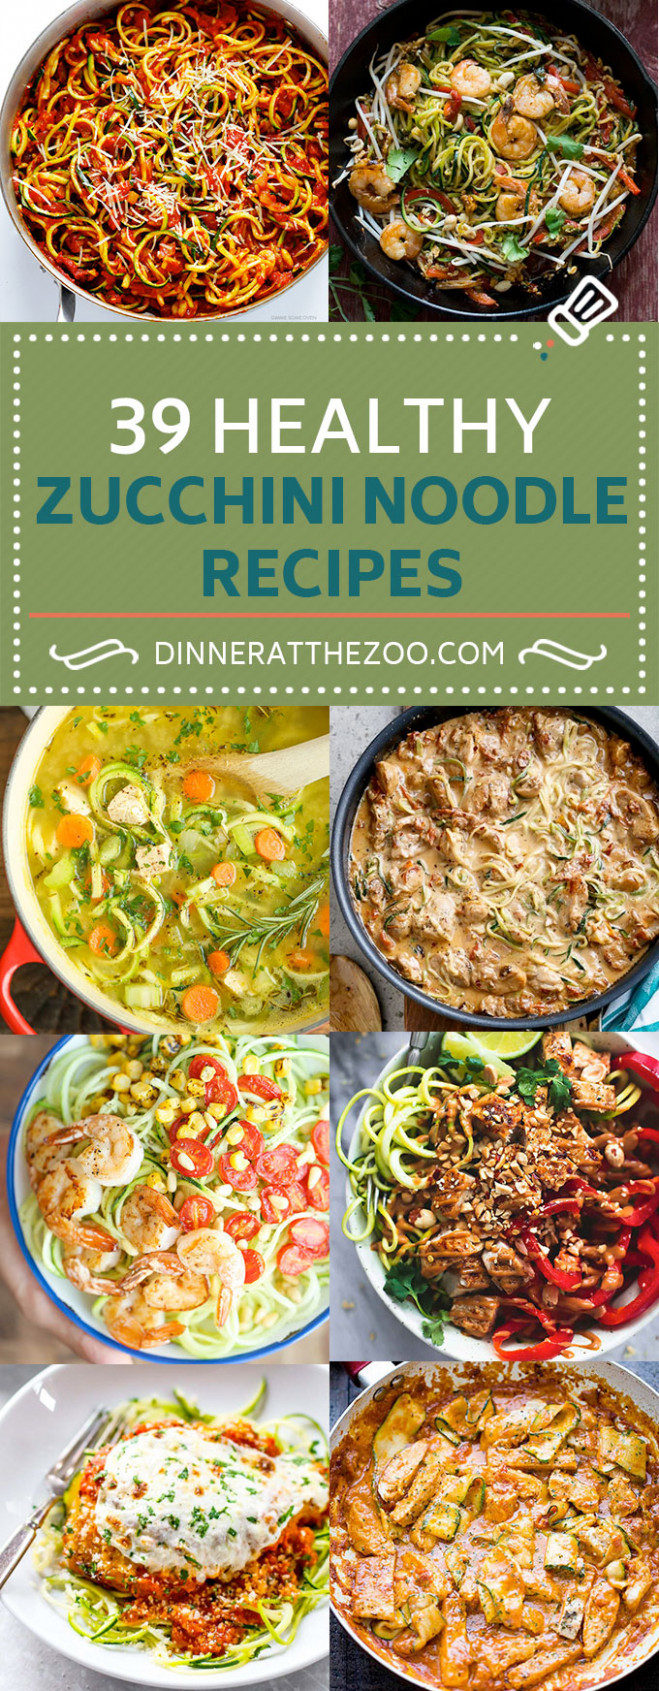 14 Healthy Zoodle (Zucchini Noodle) Recipes - Dinner at the Zoo - vegetarian recipes zoodles